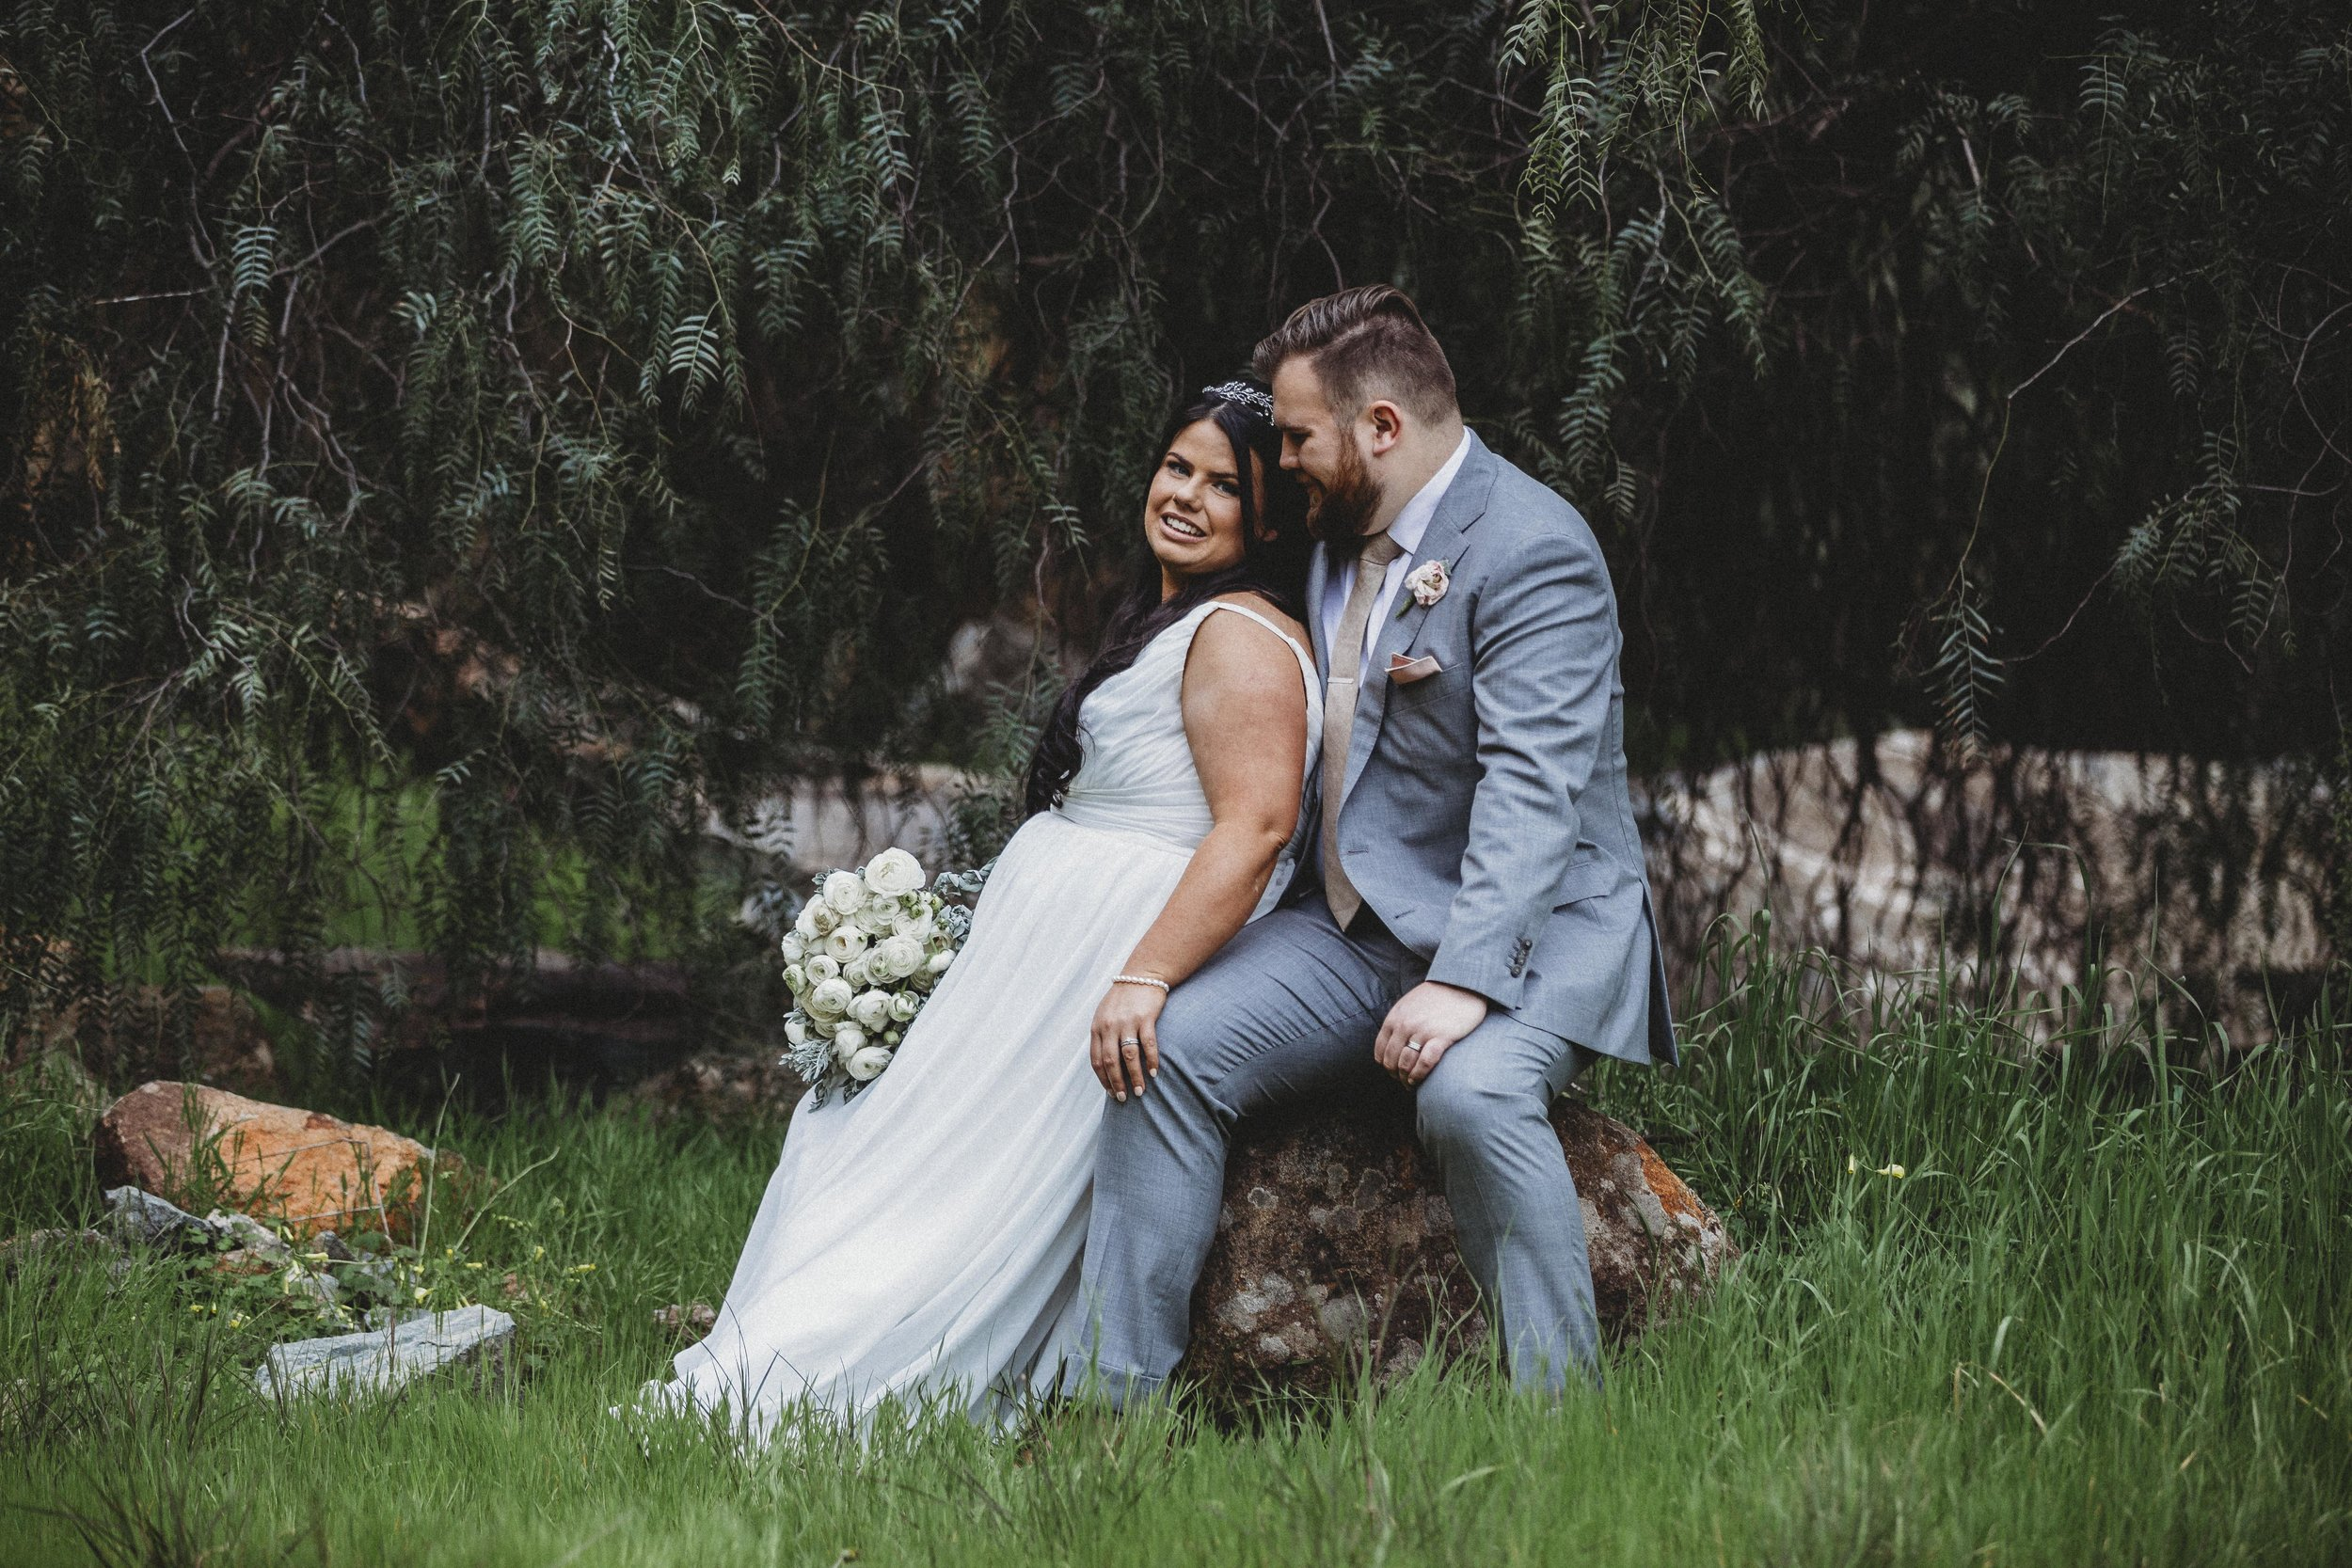 """Mr & Mrs Ahearne - """"We were so happy with our wedding photos that Amina took for us. We had such great fun with her and she made us feel really comfortable throughout the whole process. Amina listened to us and took the time to discuss with us everything we wanted. She not only captured our spirit as a couple, but got photos of all our guests and now we have such beautiful precious memories to hold onto forever. Obviously not having been through something like that, Amina took the time to walk us through what the day might look like and ensured she was able to capture every special moment. Thanks so much Amina!!! Xo"""